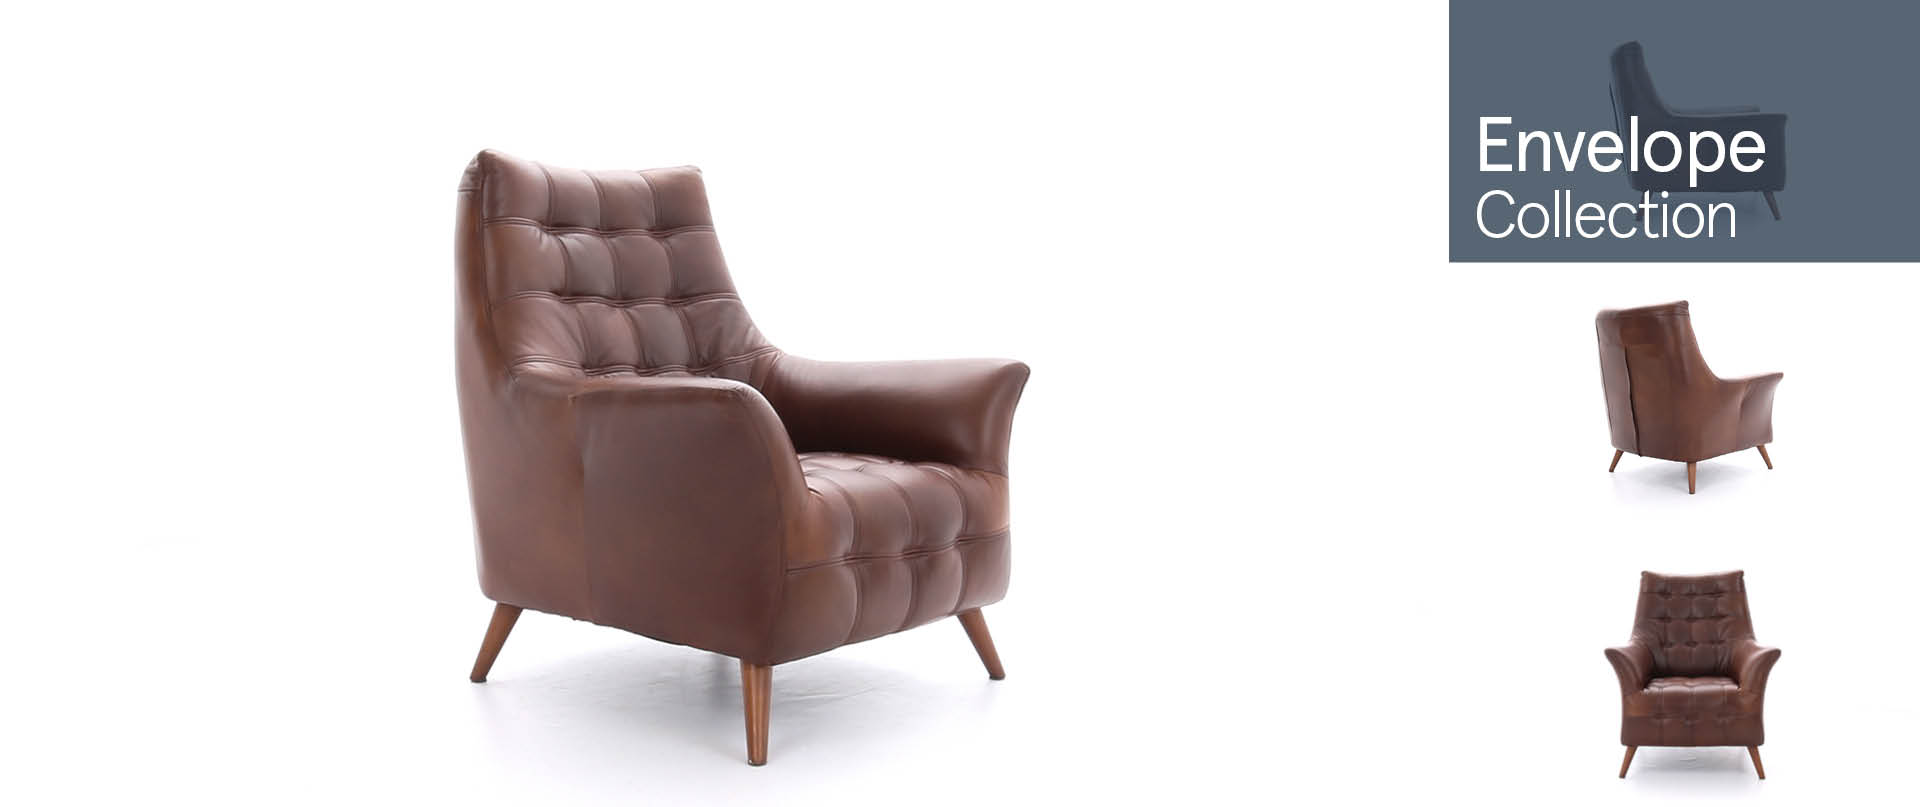 Envelope Chairs and Footstools Ranges